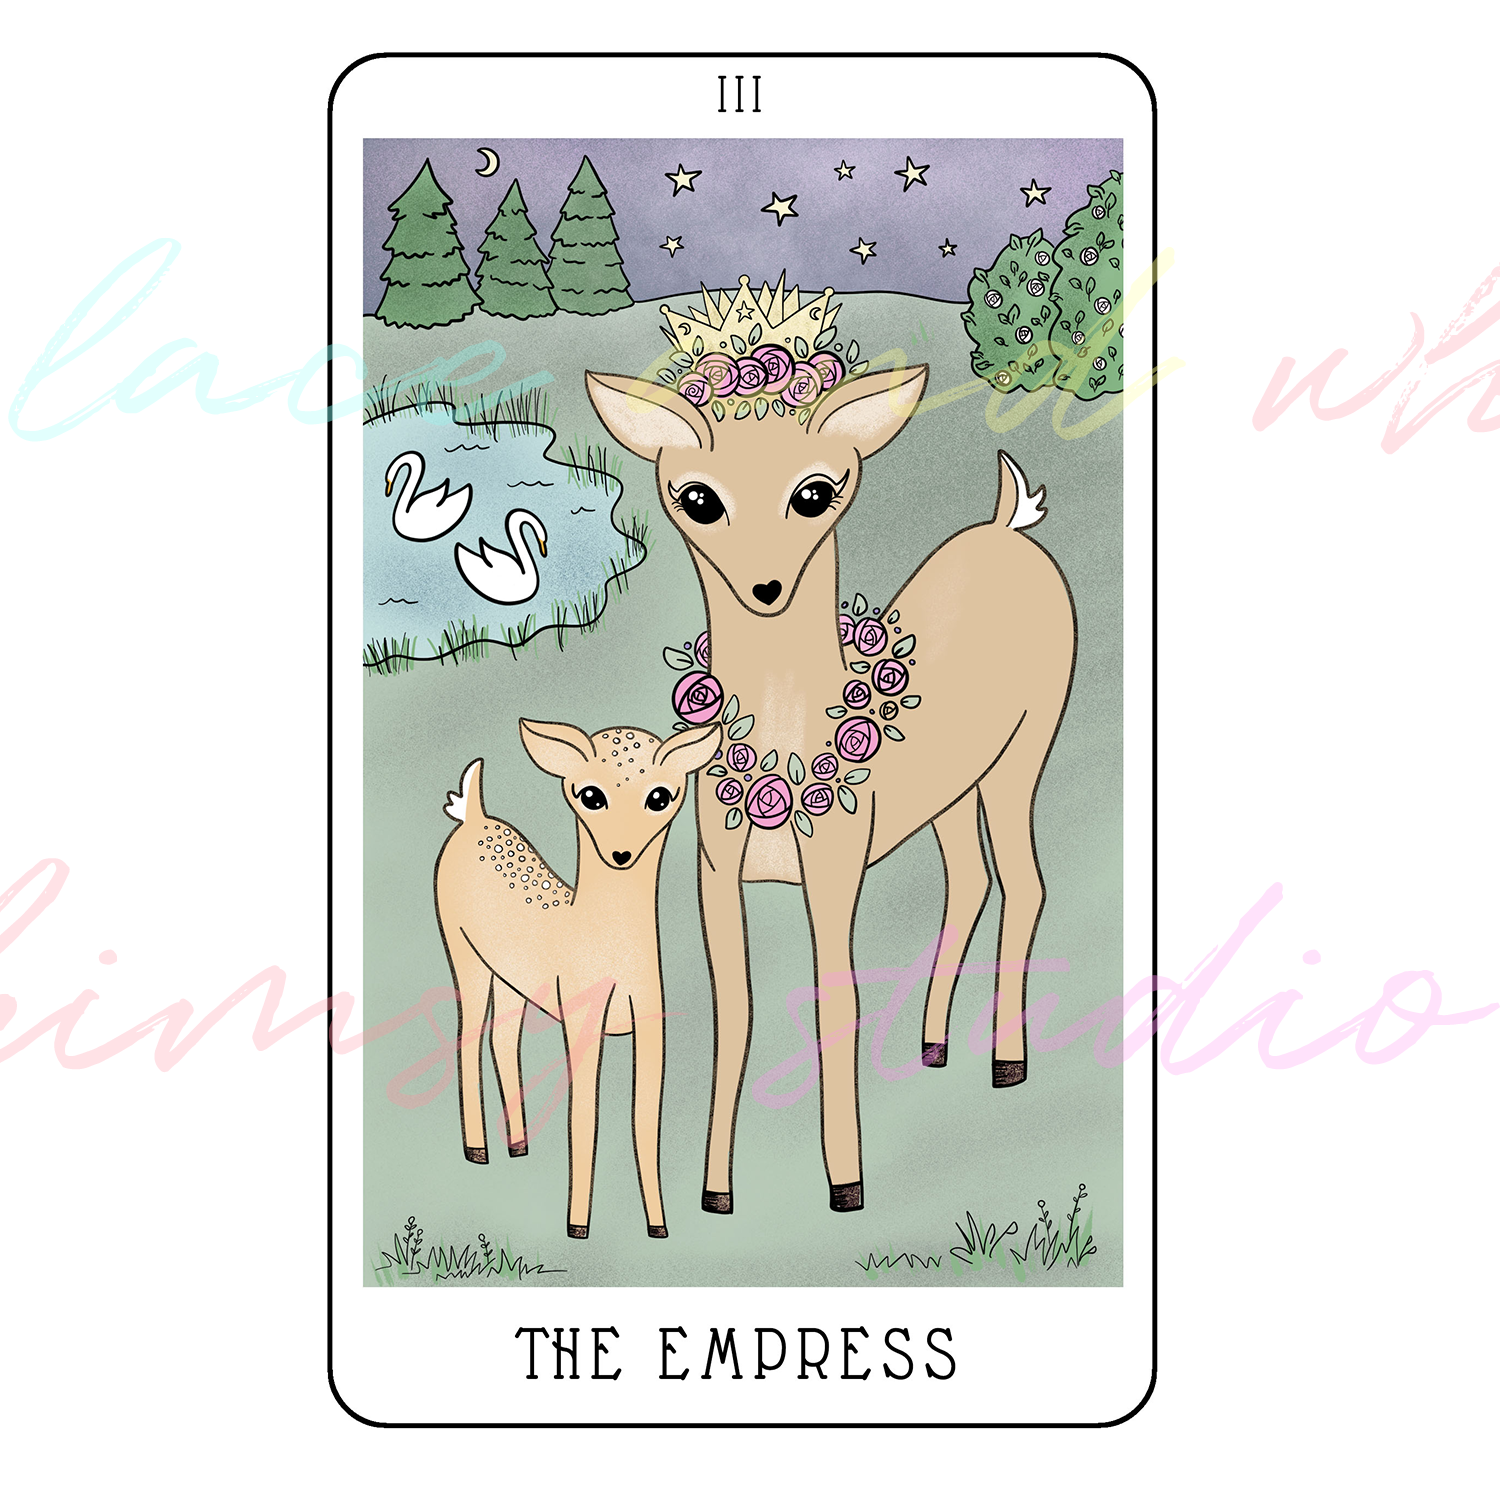 tarot-cards-illustration-series-2018-laceandwhimsy-kathy-d-clark-The-Empress.png